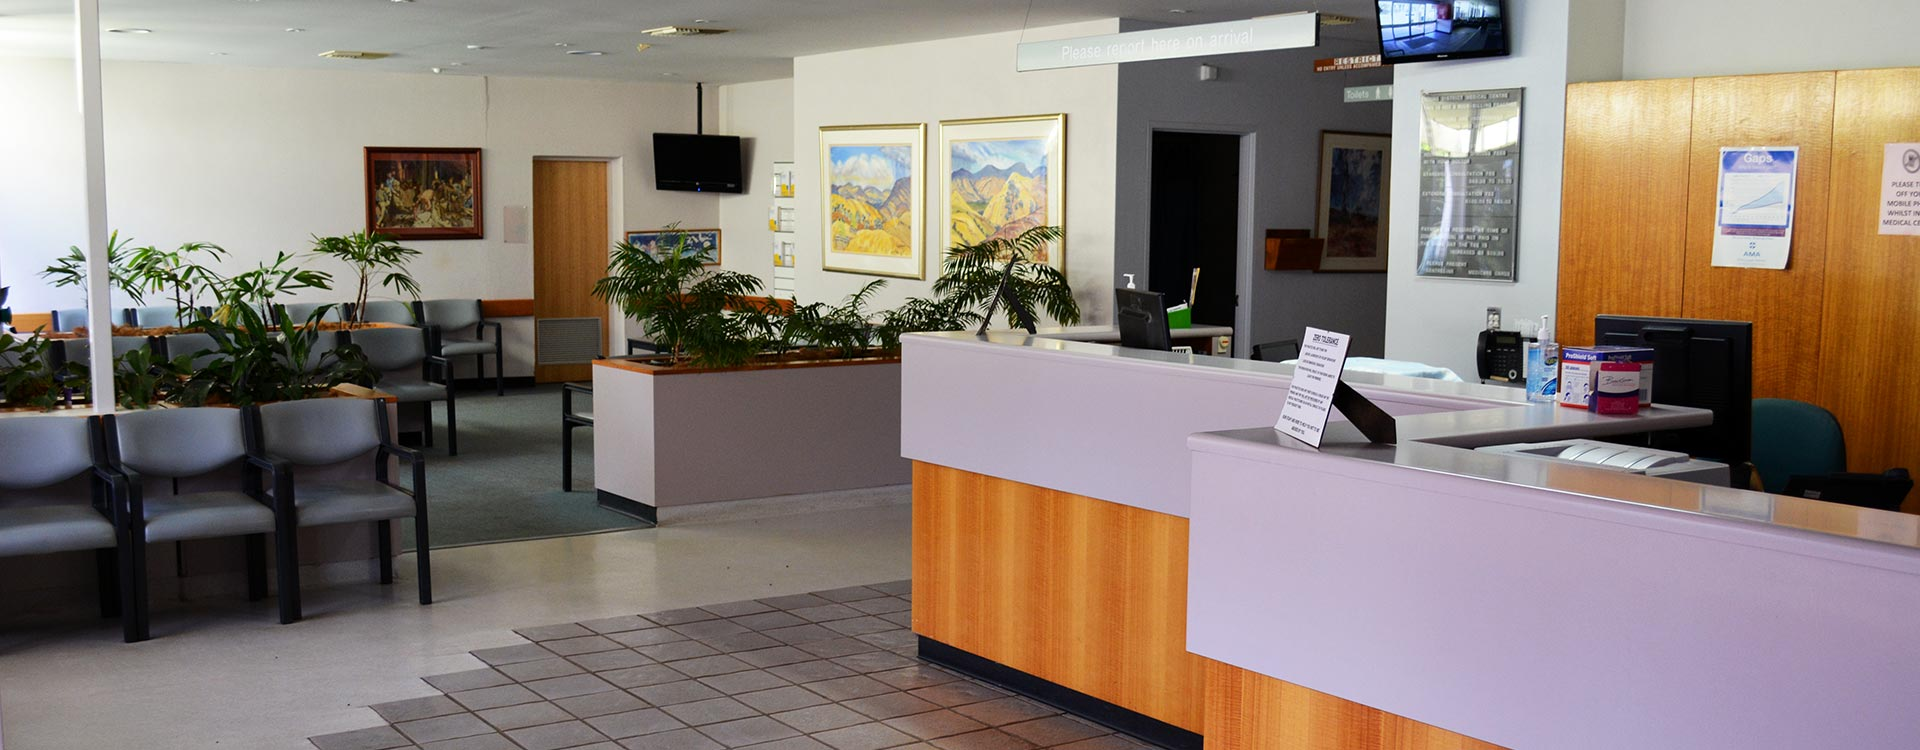 Young Disctrict Medical Centre reception